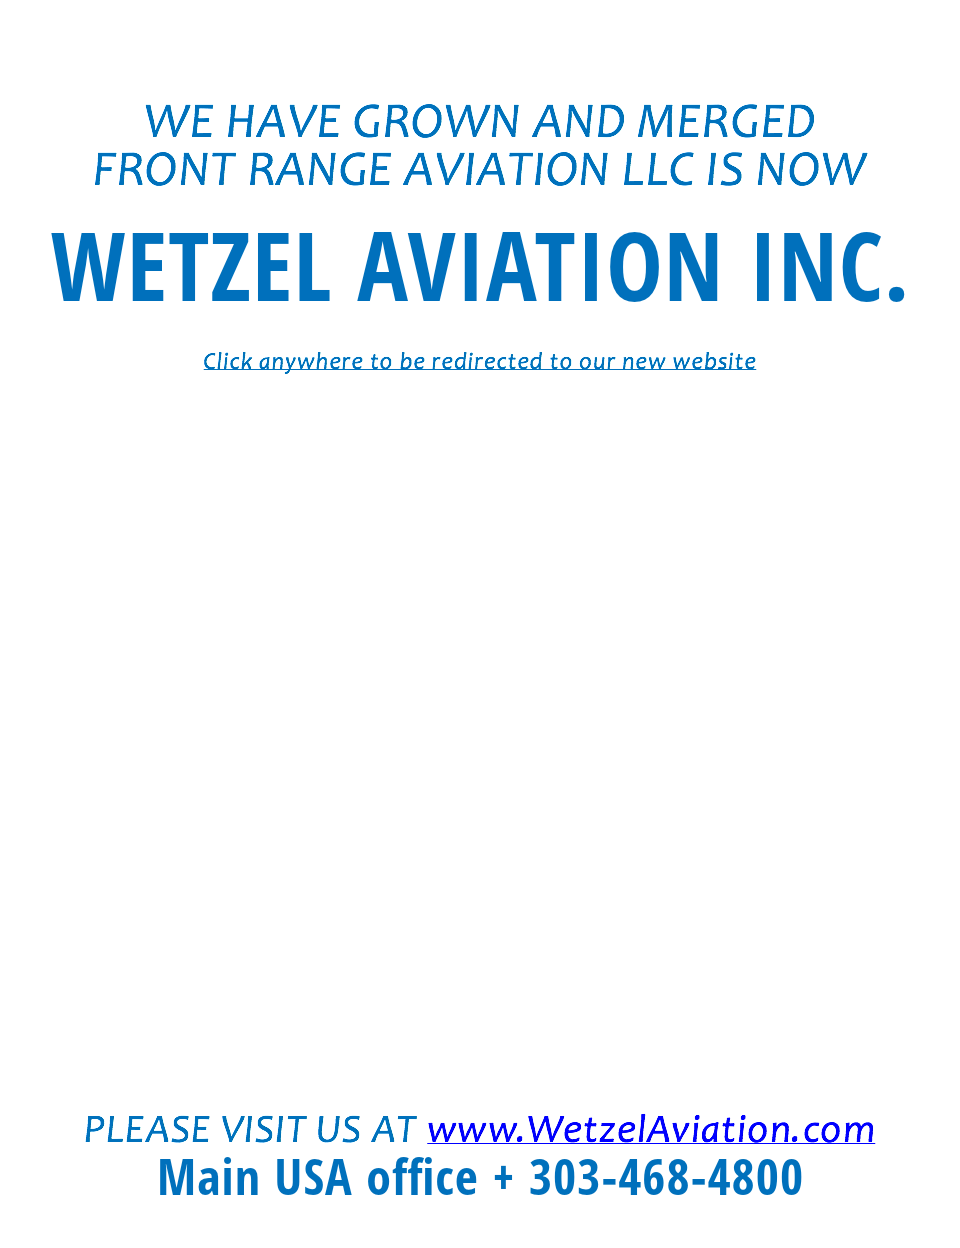 WE HAVE GROWN AND MERGED FRONT RANGE AVIATION LLC IS NOW WETZEL AVIATION INC. Click anywhere to be redirected to our new website PLEASE VISIT US AT www.WetzelAviation.com Main USA office + 303-468-4800